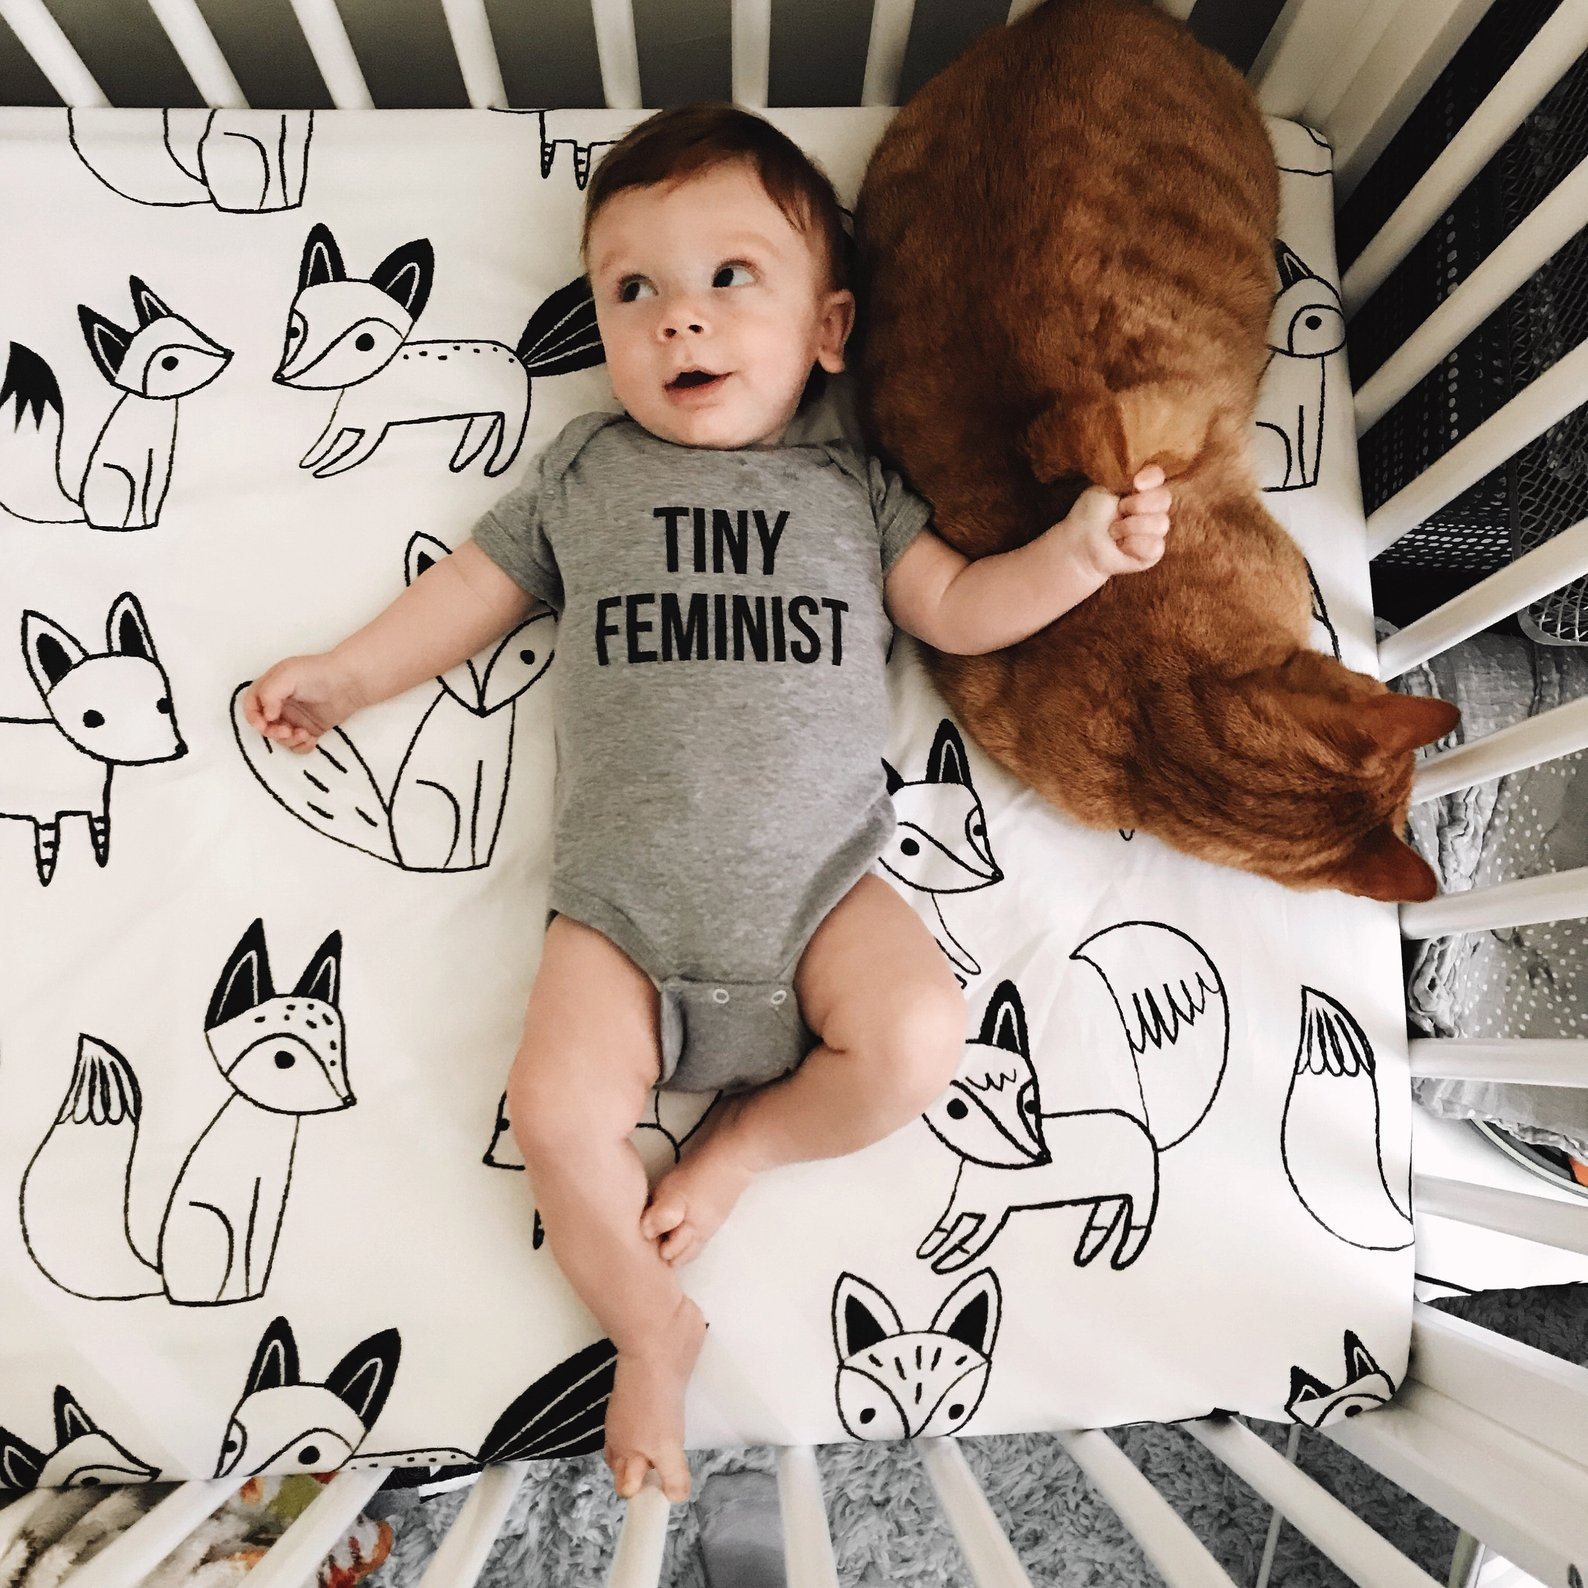 Feminist Baby Clothes By Sad Shop